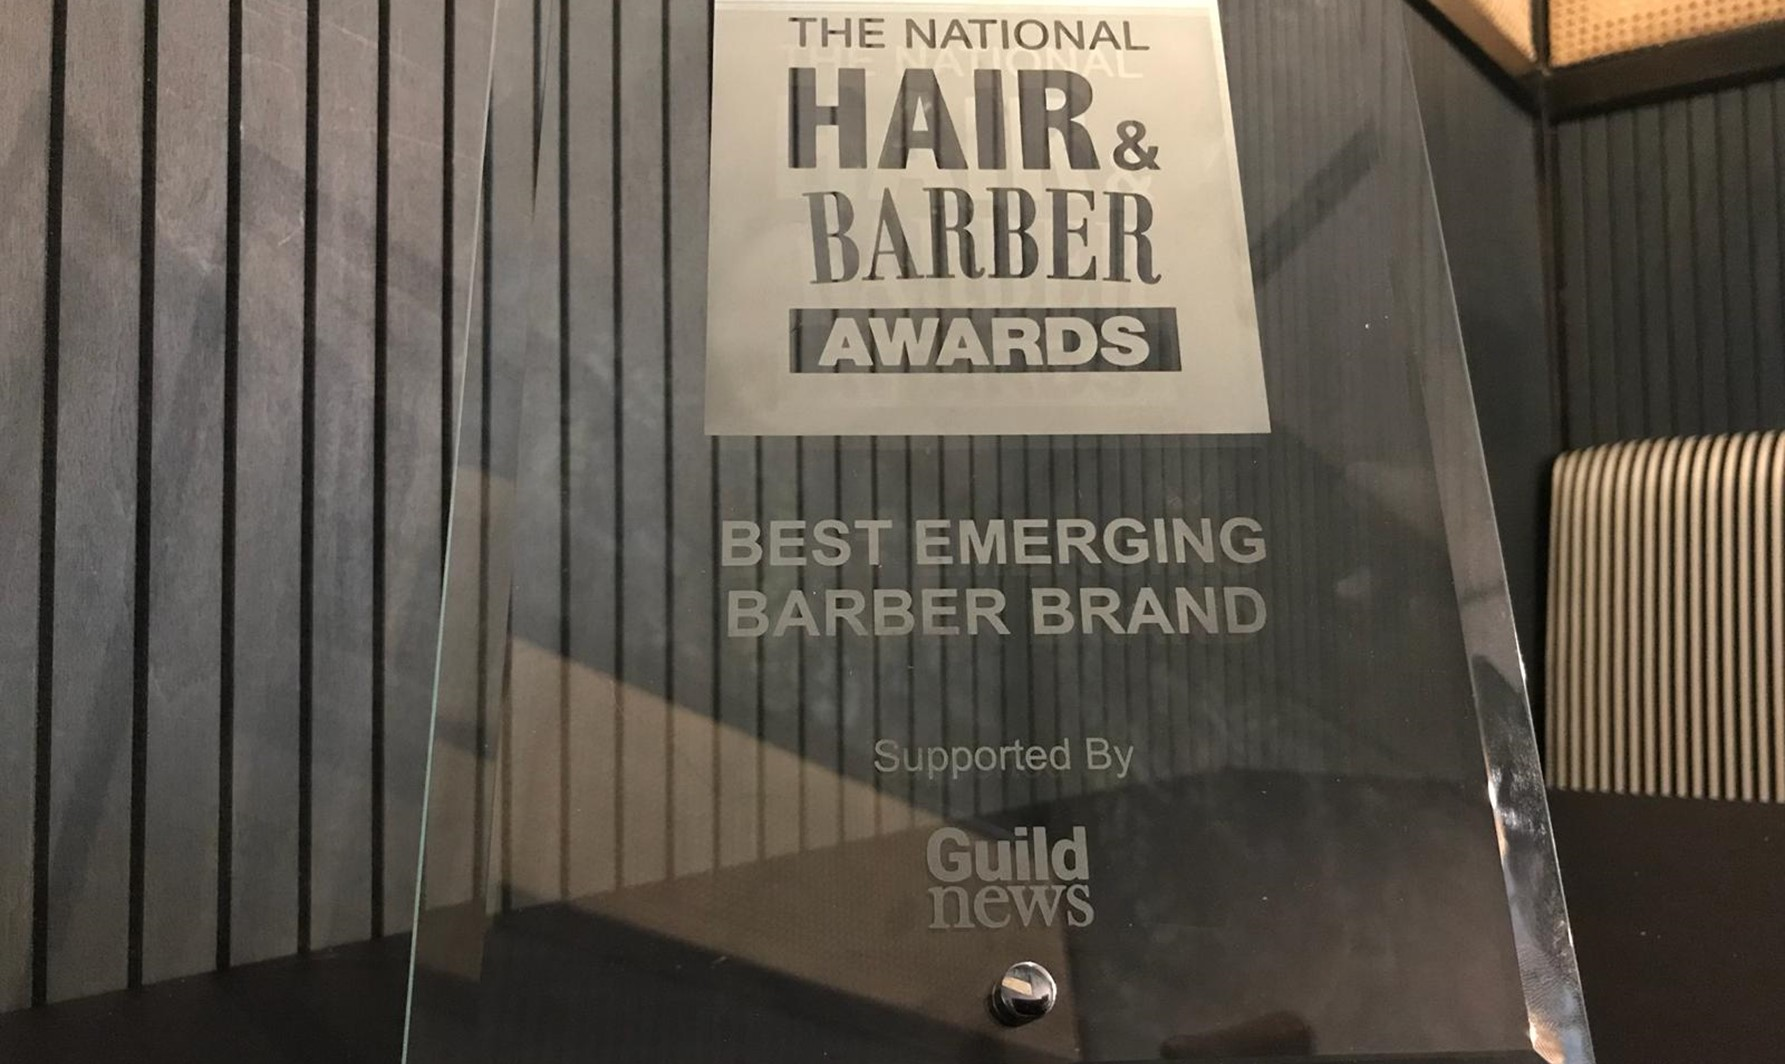 Get Groomed has been awarded Best Emerging Barber Brand !!